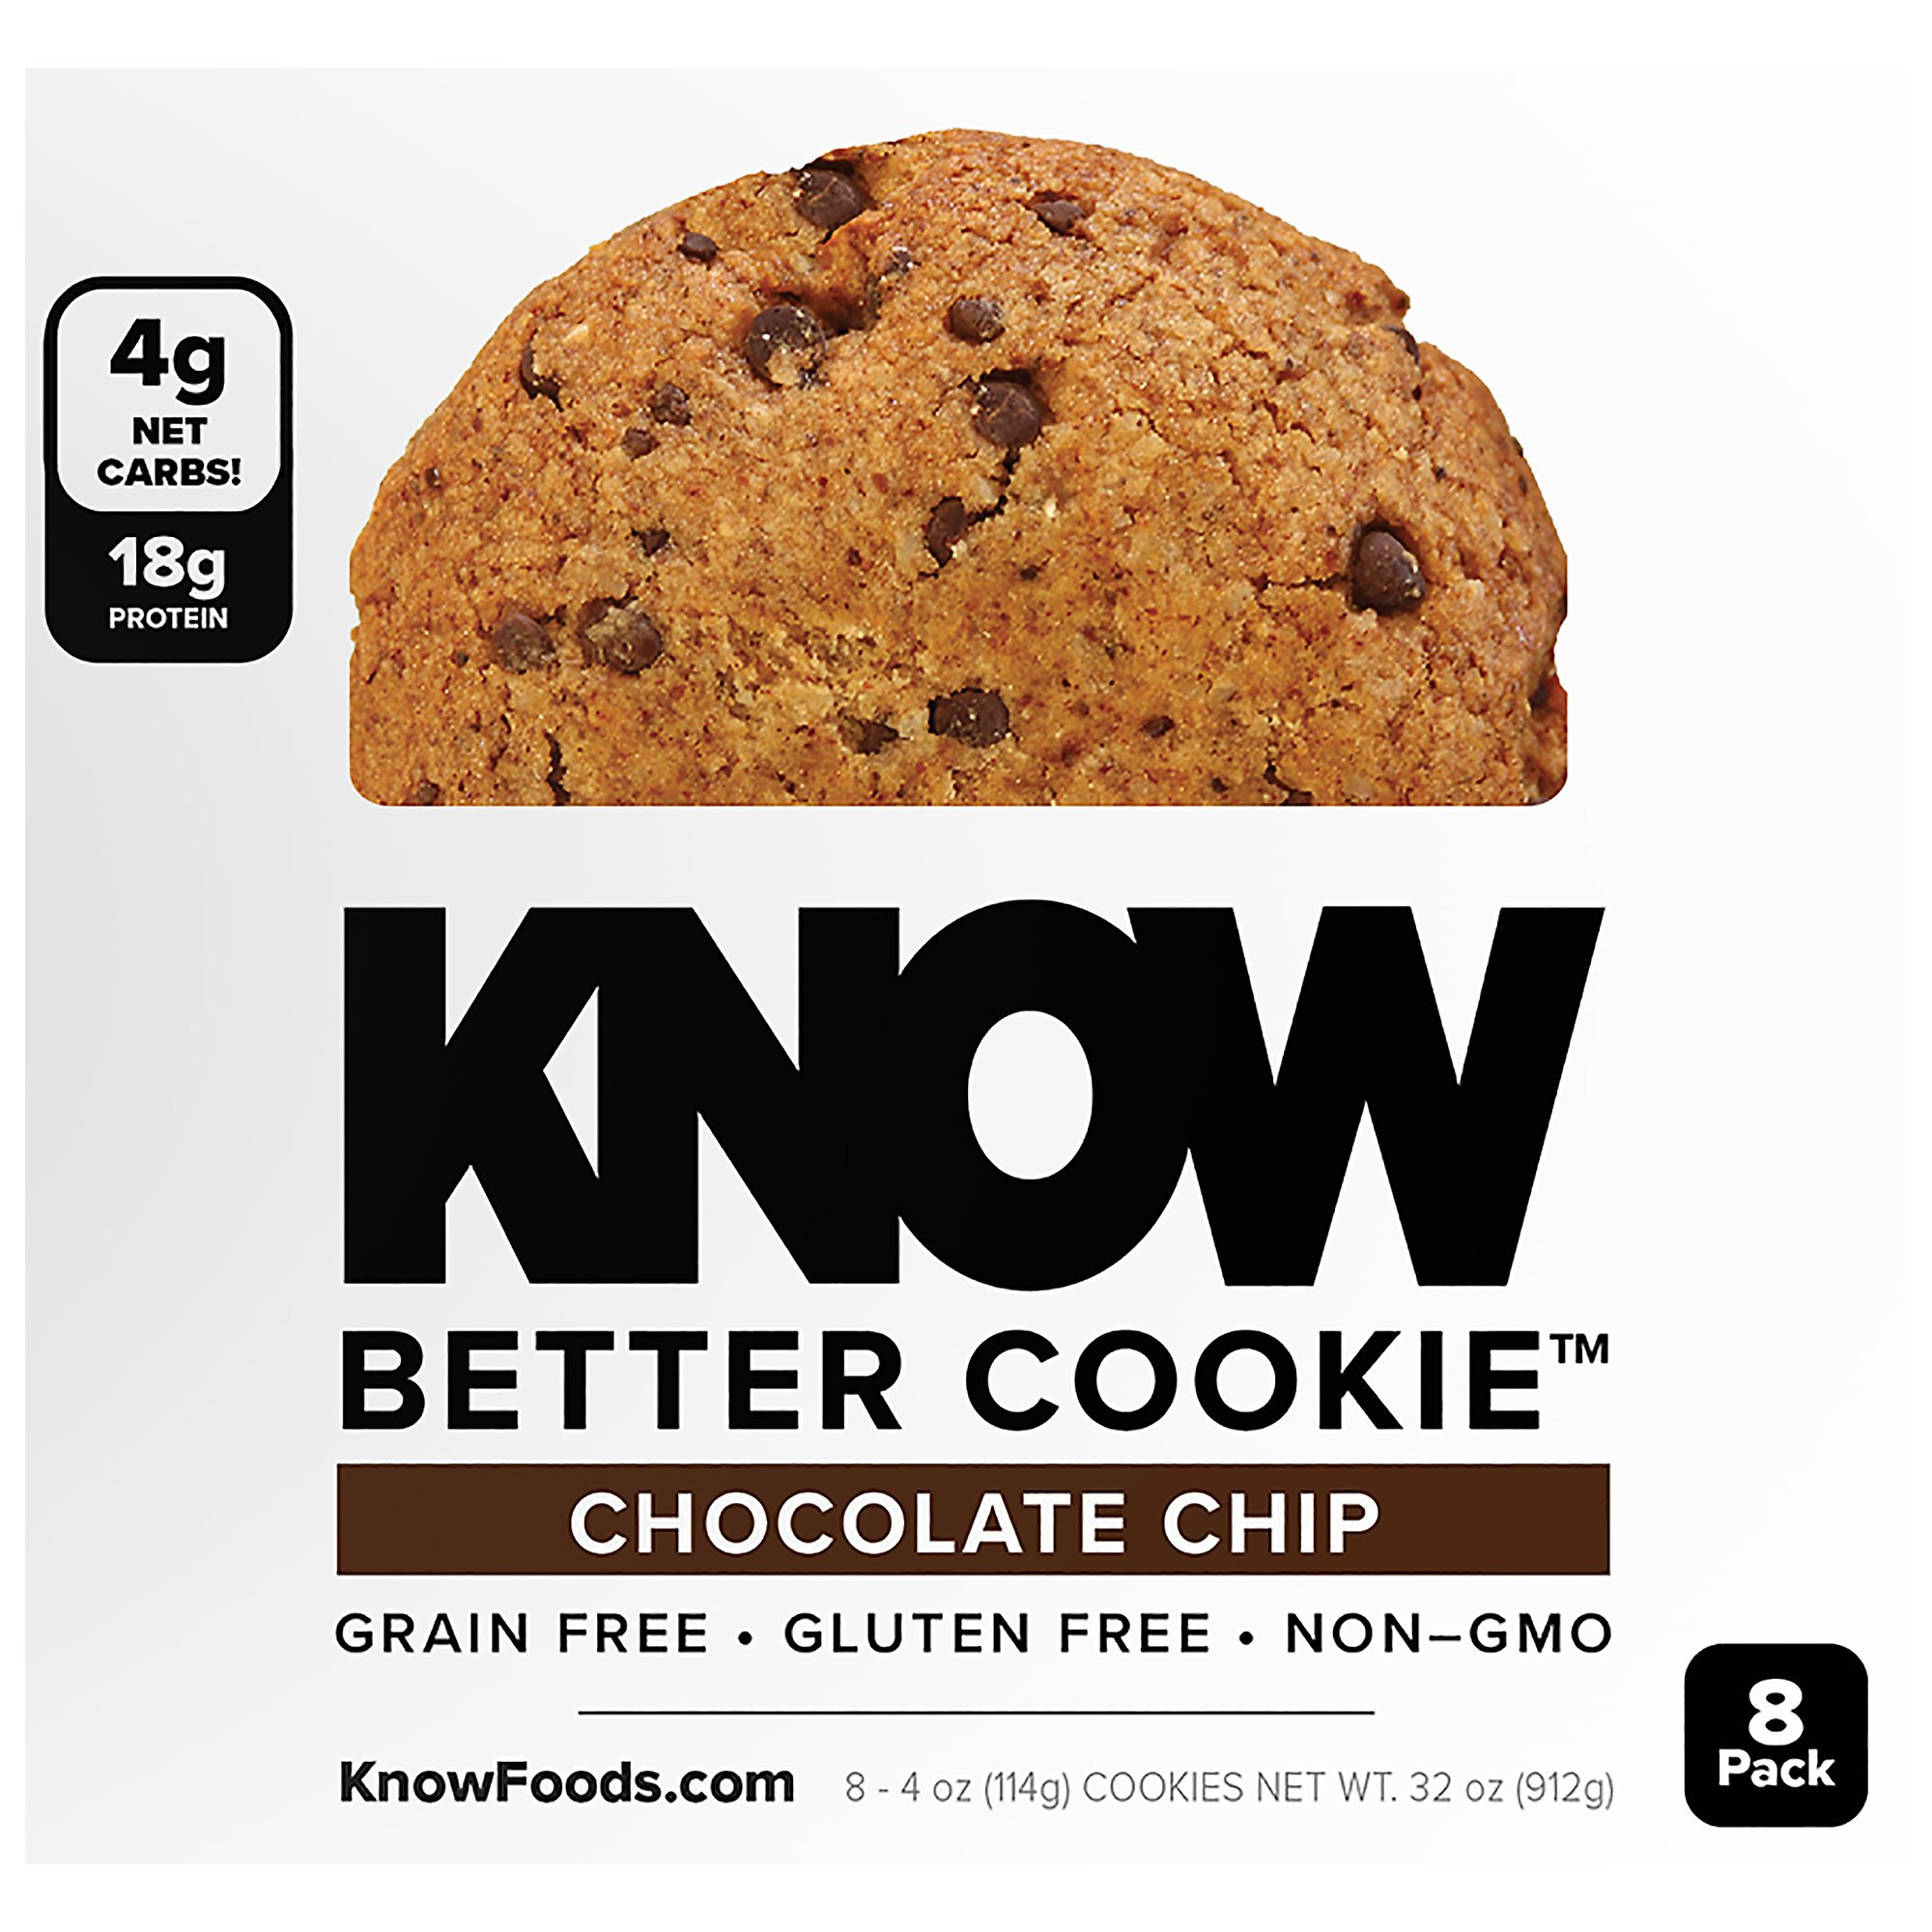 KNOW Better Cookies - Chocolate Chip 4 oz Cookies (Pack of 8)